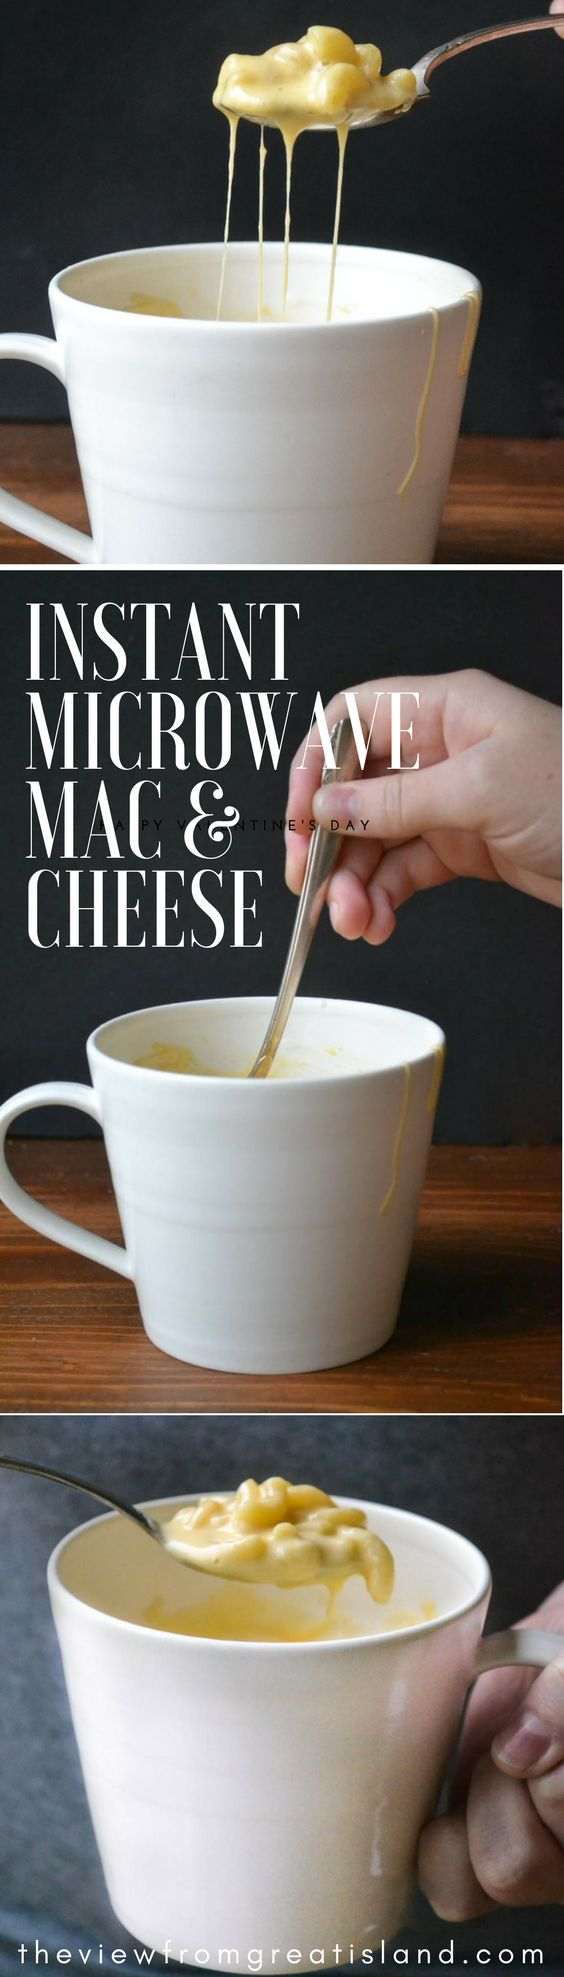 Instant Microwave Macaroni and Cheese in a Mug-IDEA ONLY